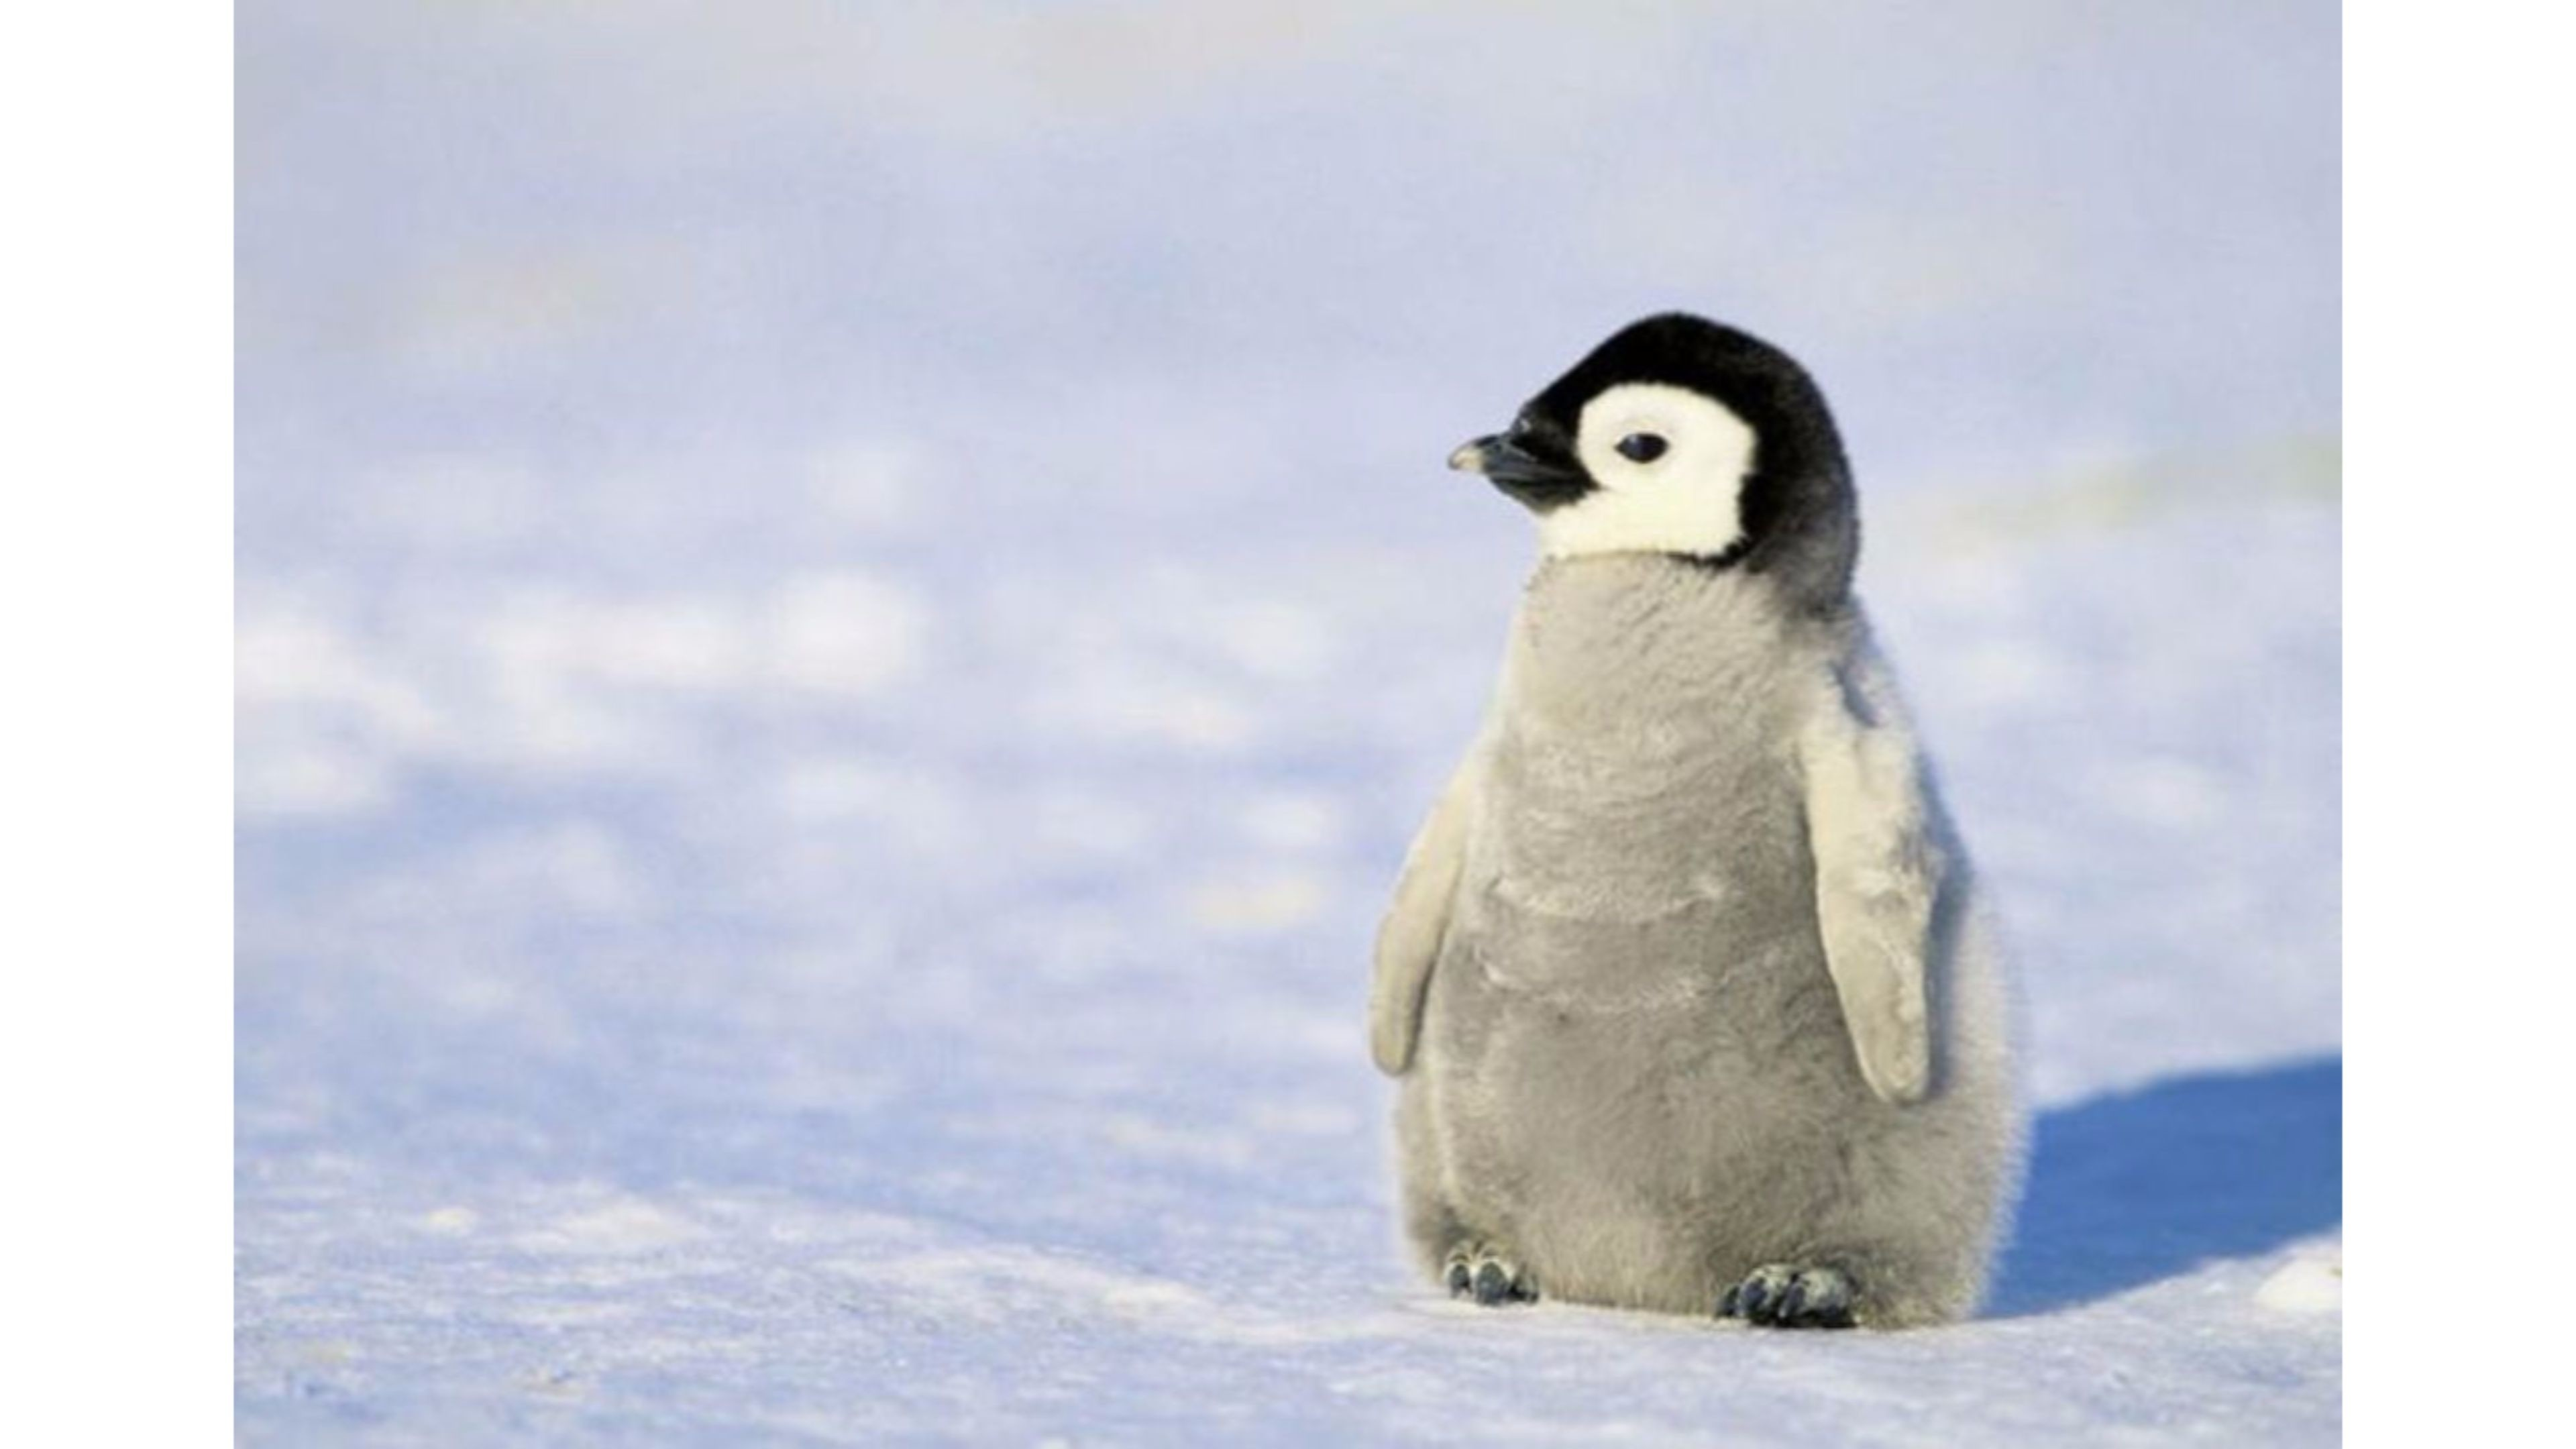 Cute Penguin Backgrounds 38 Images HD Wallpapers Download Free Images Wallpaper [1000image.com]